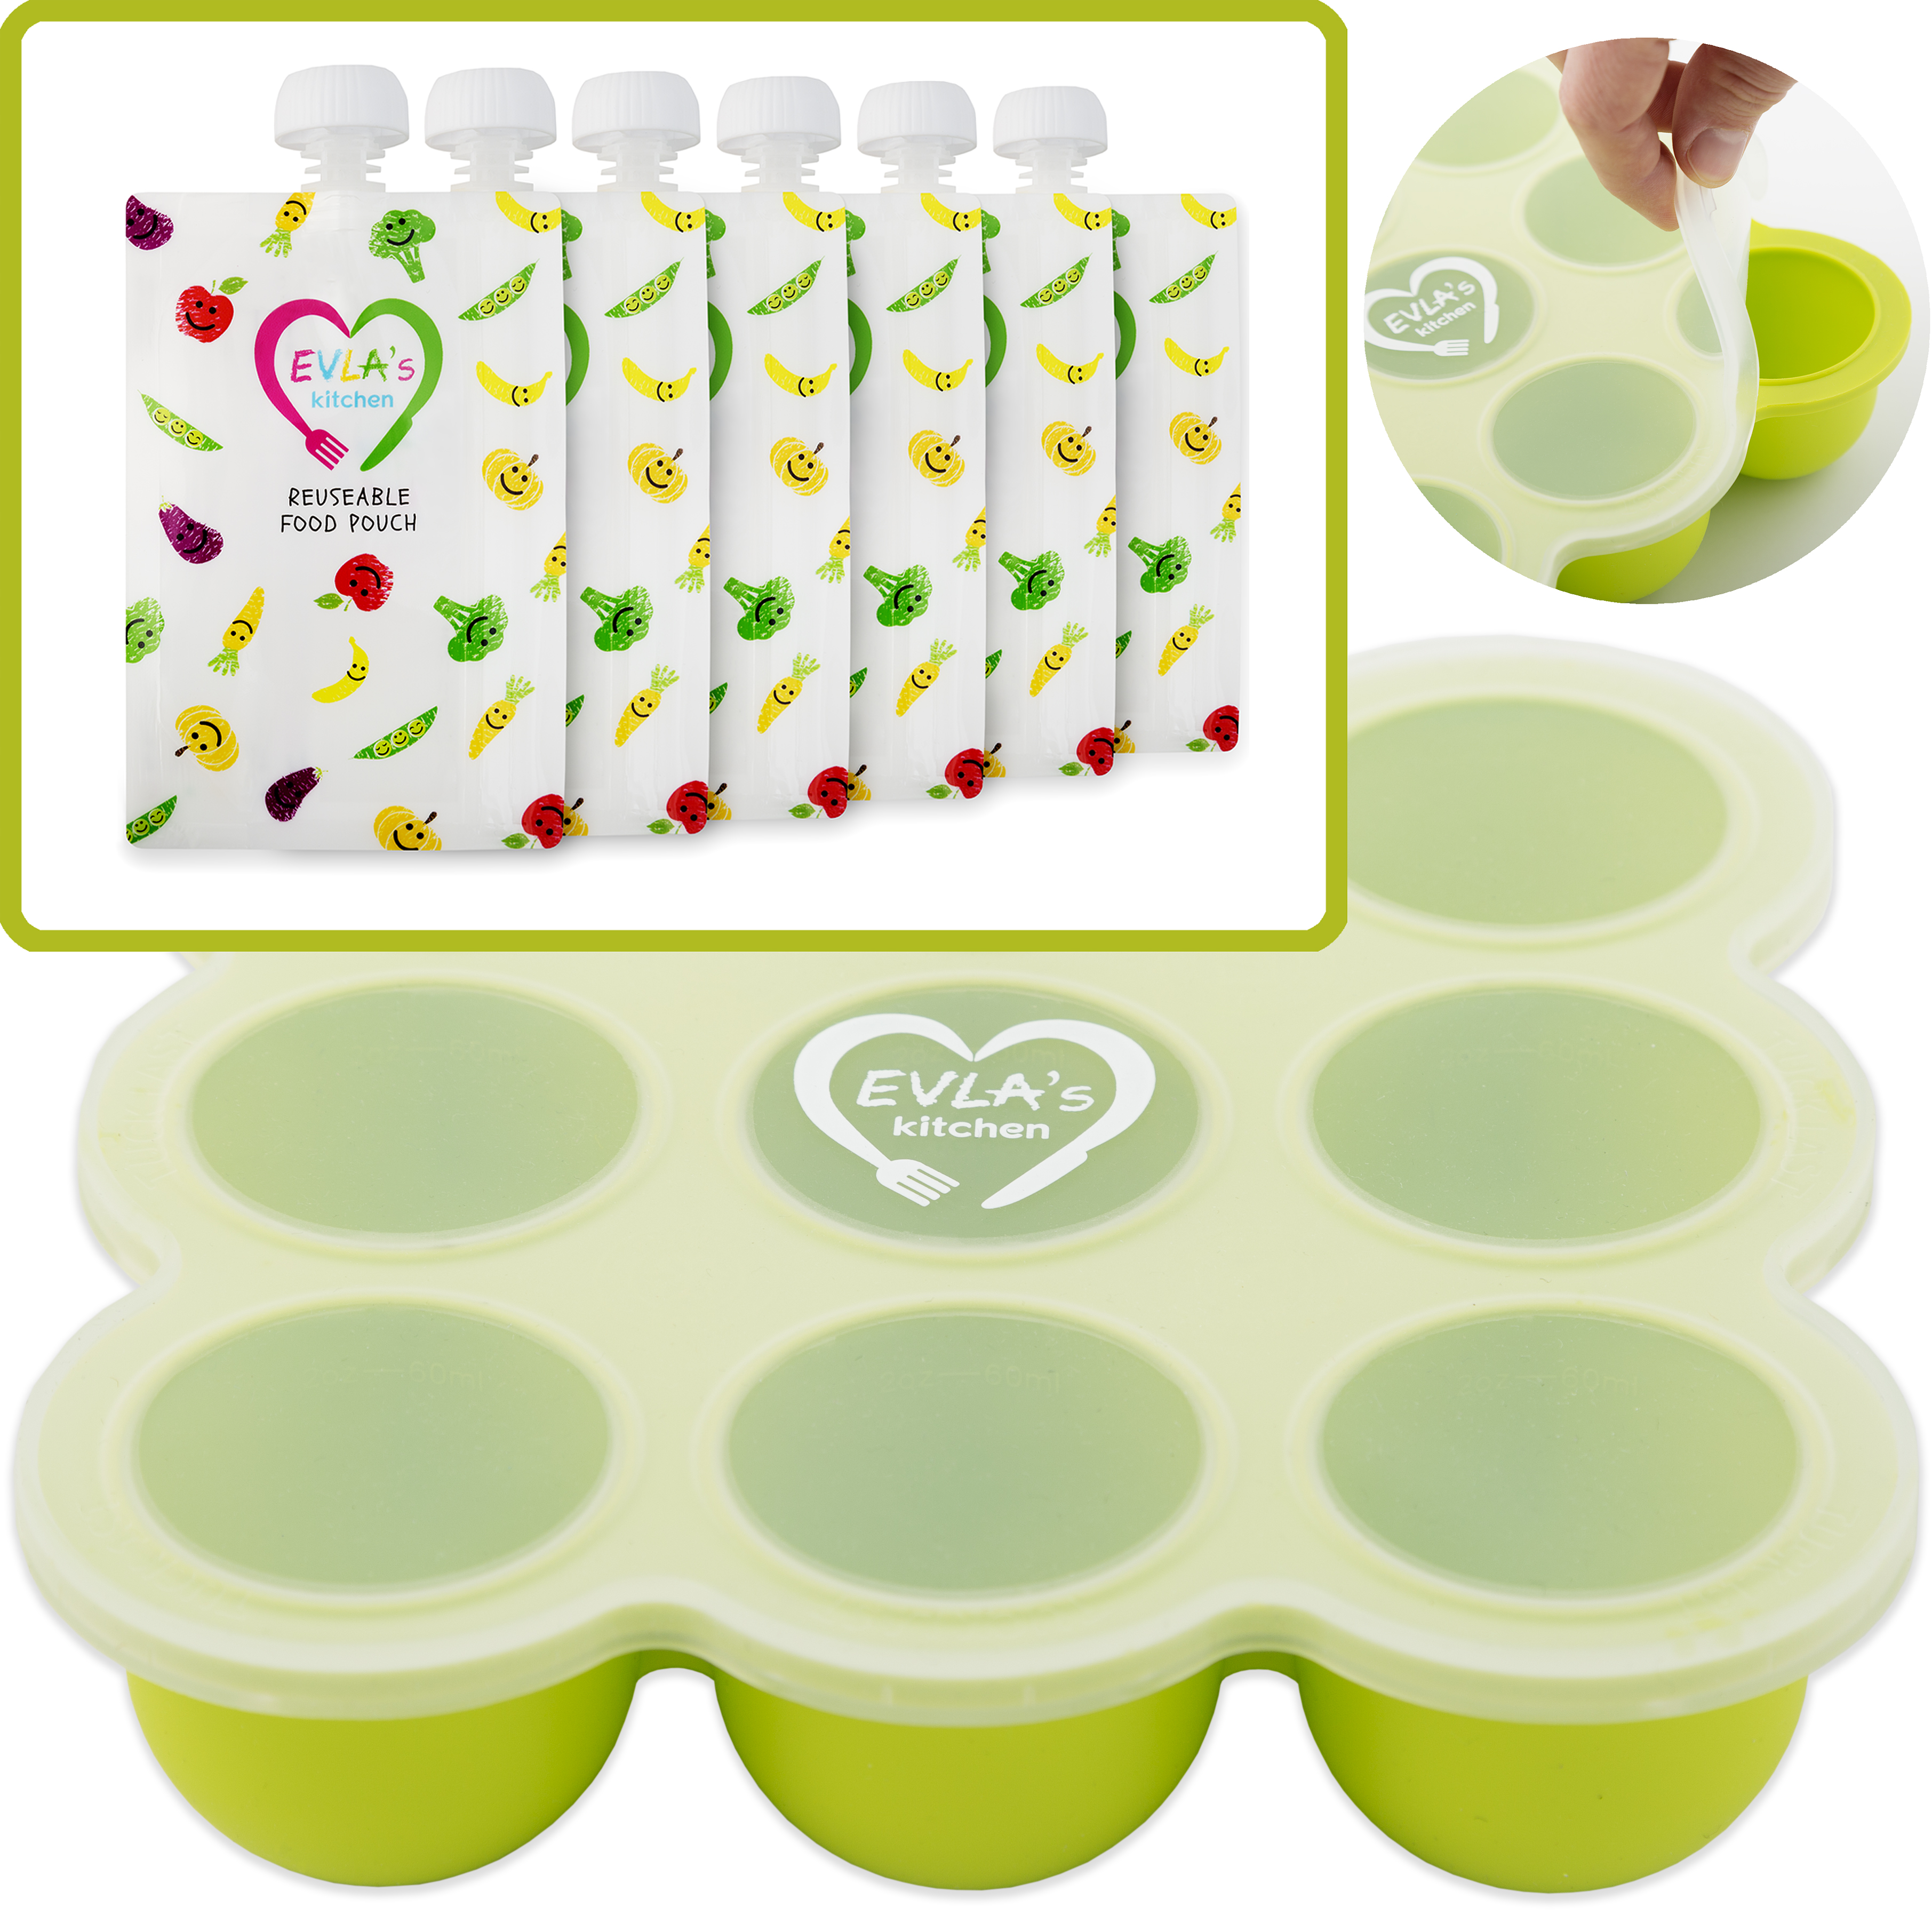 Baby Food Freezer Trays & Reusable Food Pouches Set